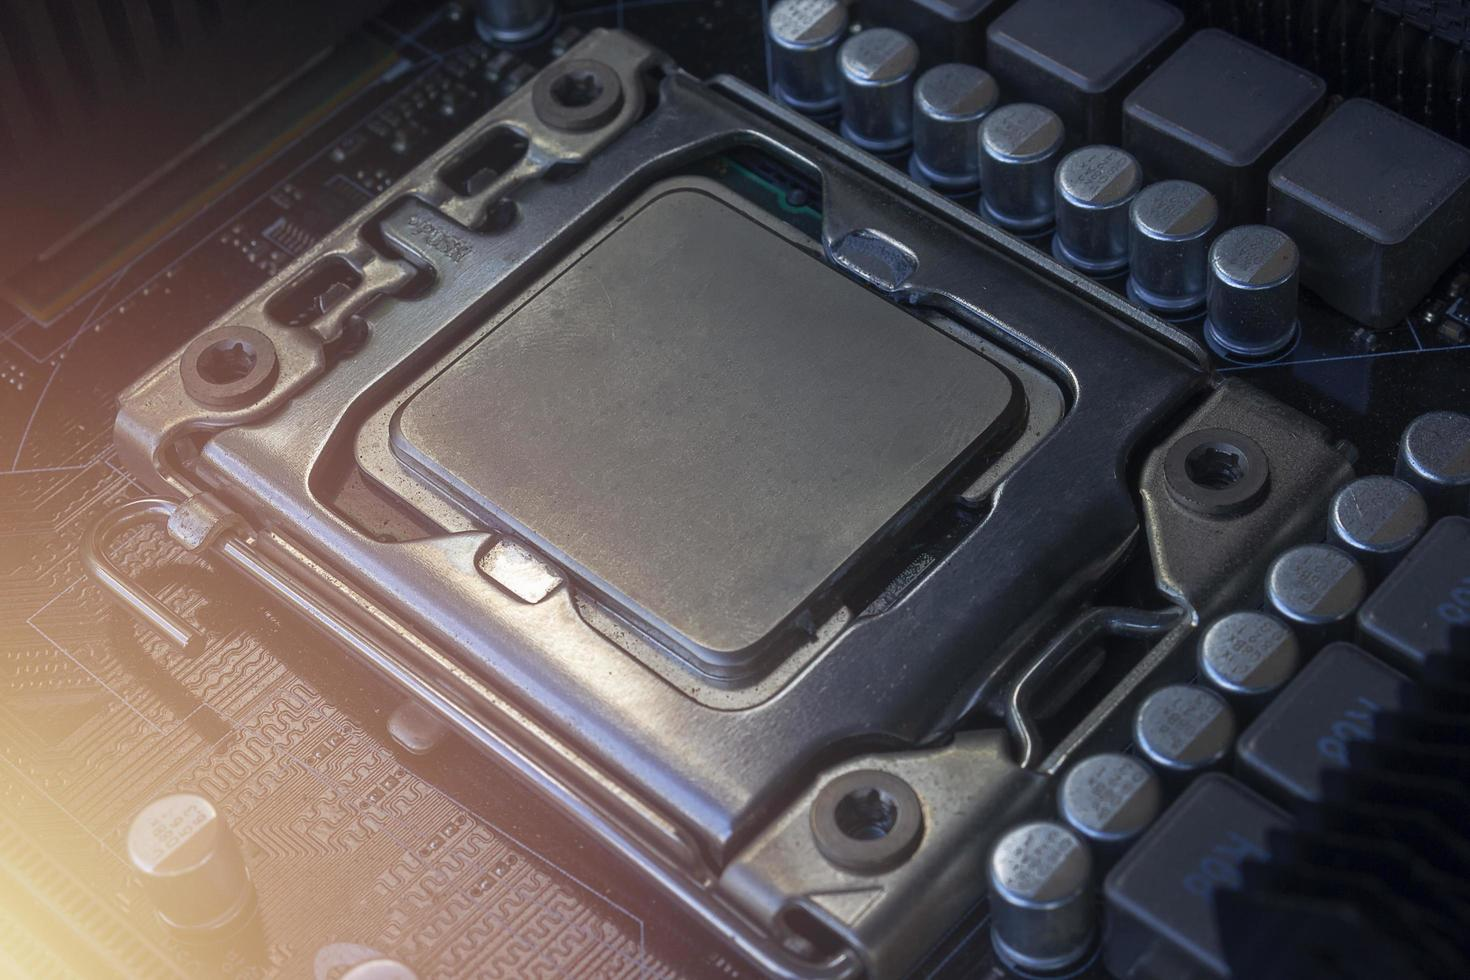 A cpu socket on motherboard PC  photo